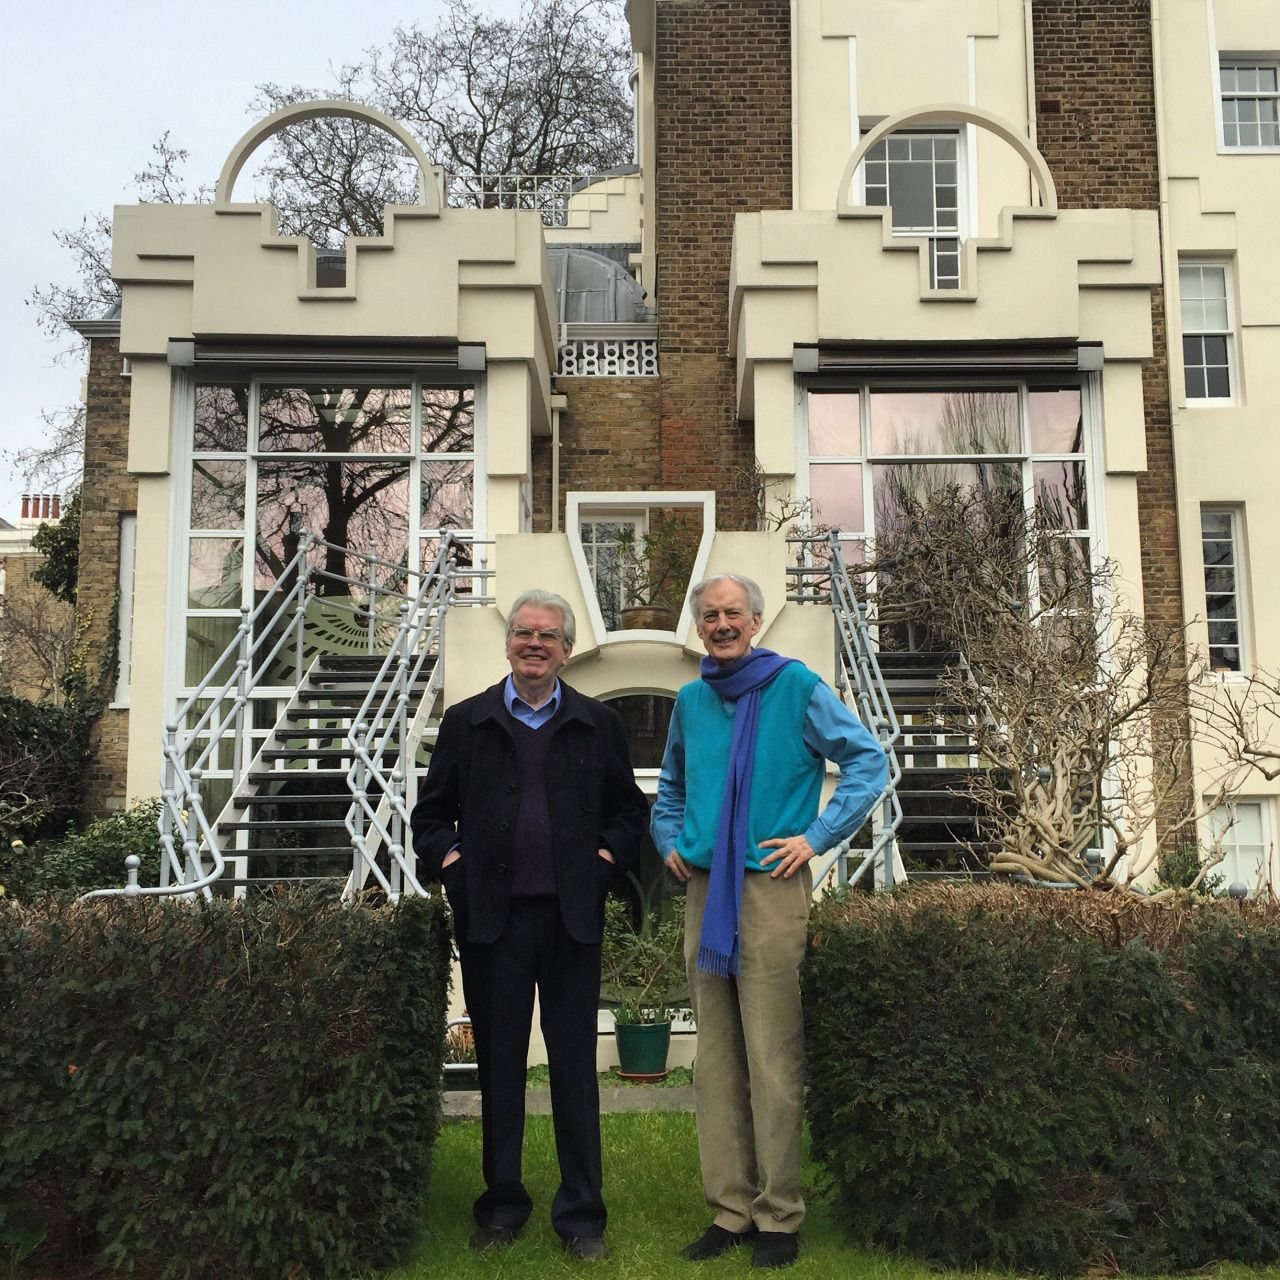 Terry Farrell and Charles Jencks outside the Thematic House